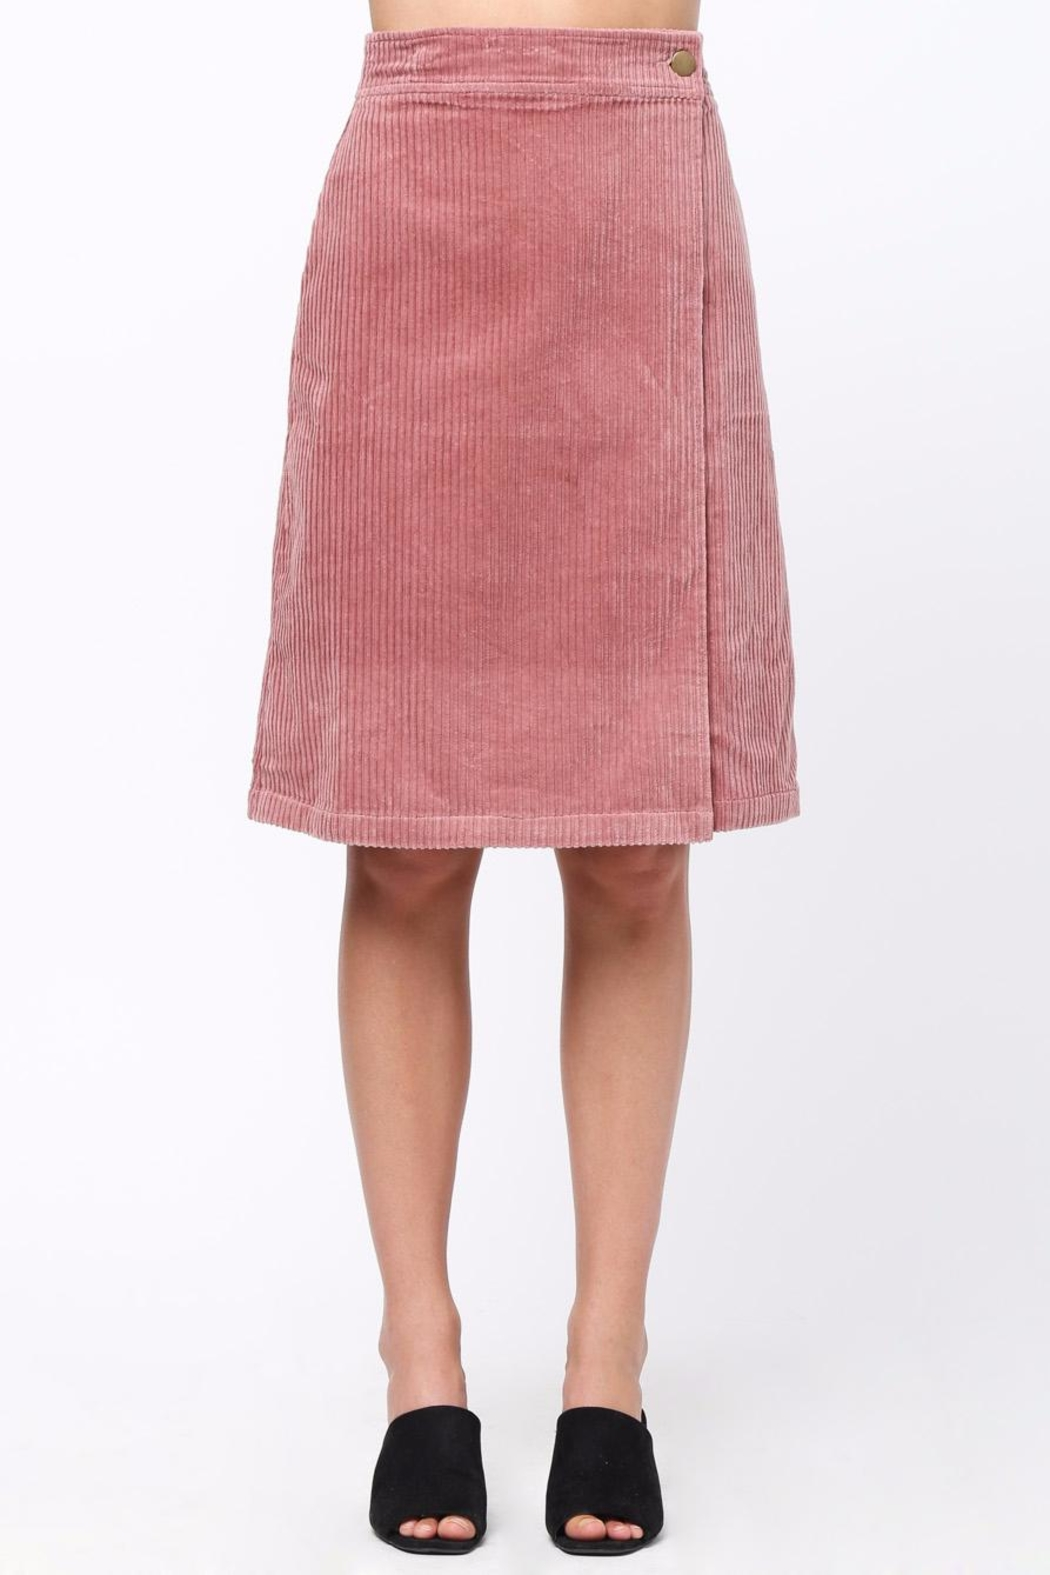 bb705c61c361 Movint Folded Corduroy Midi Skirt from California by Mo:Vint ...